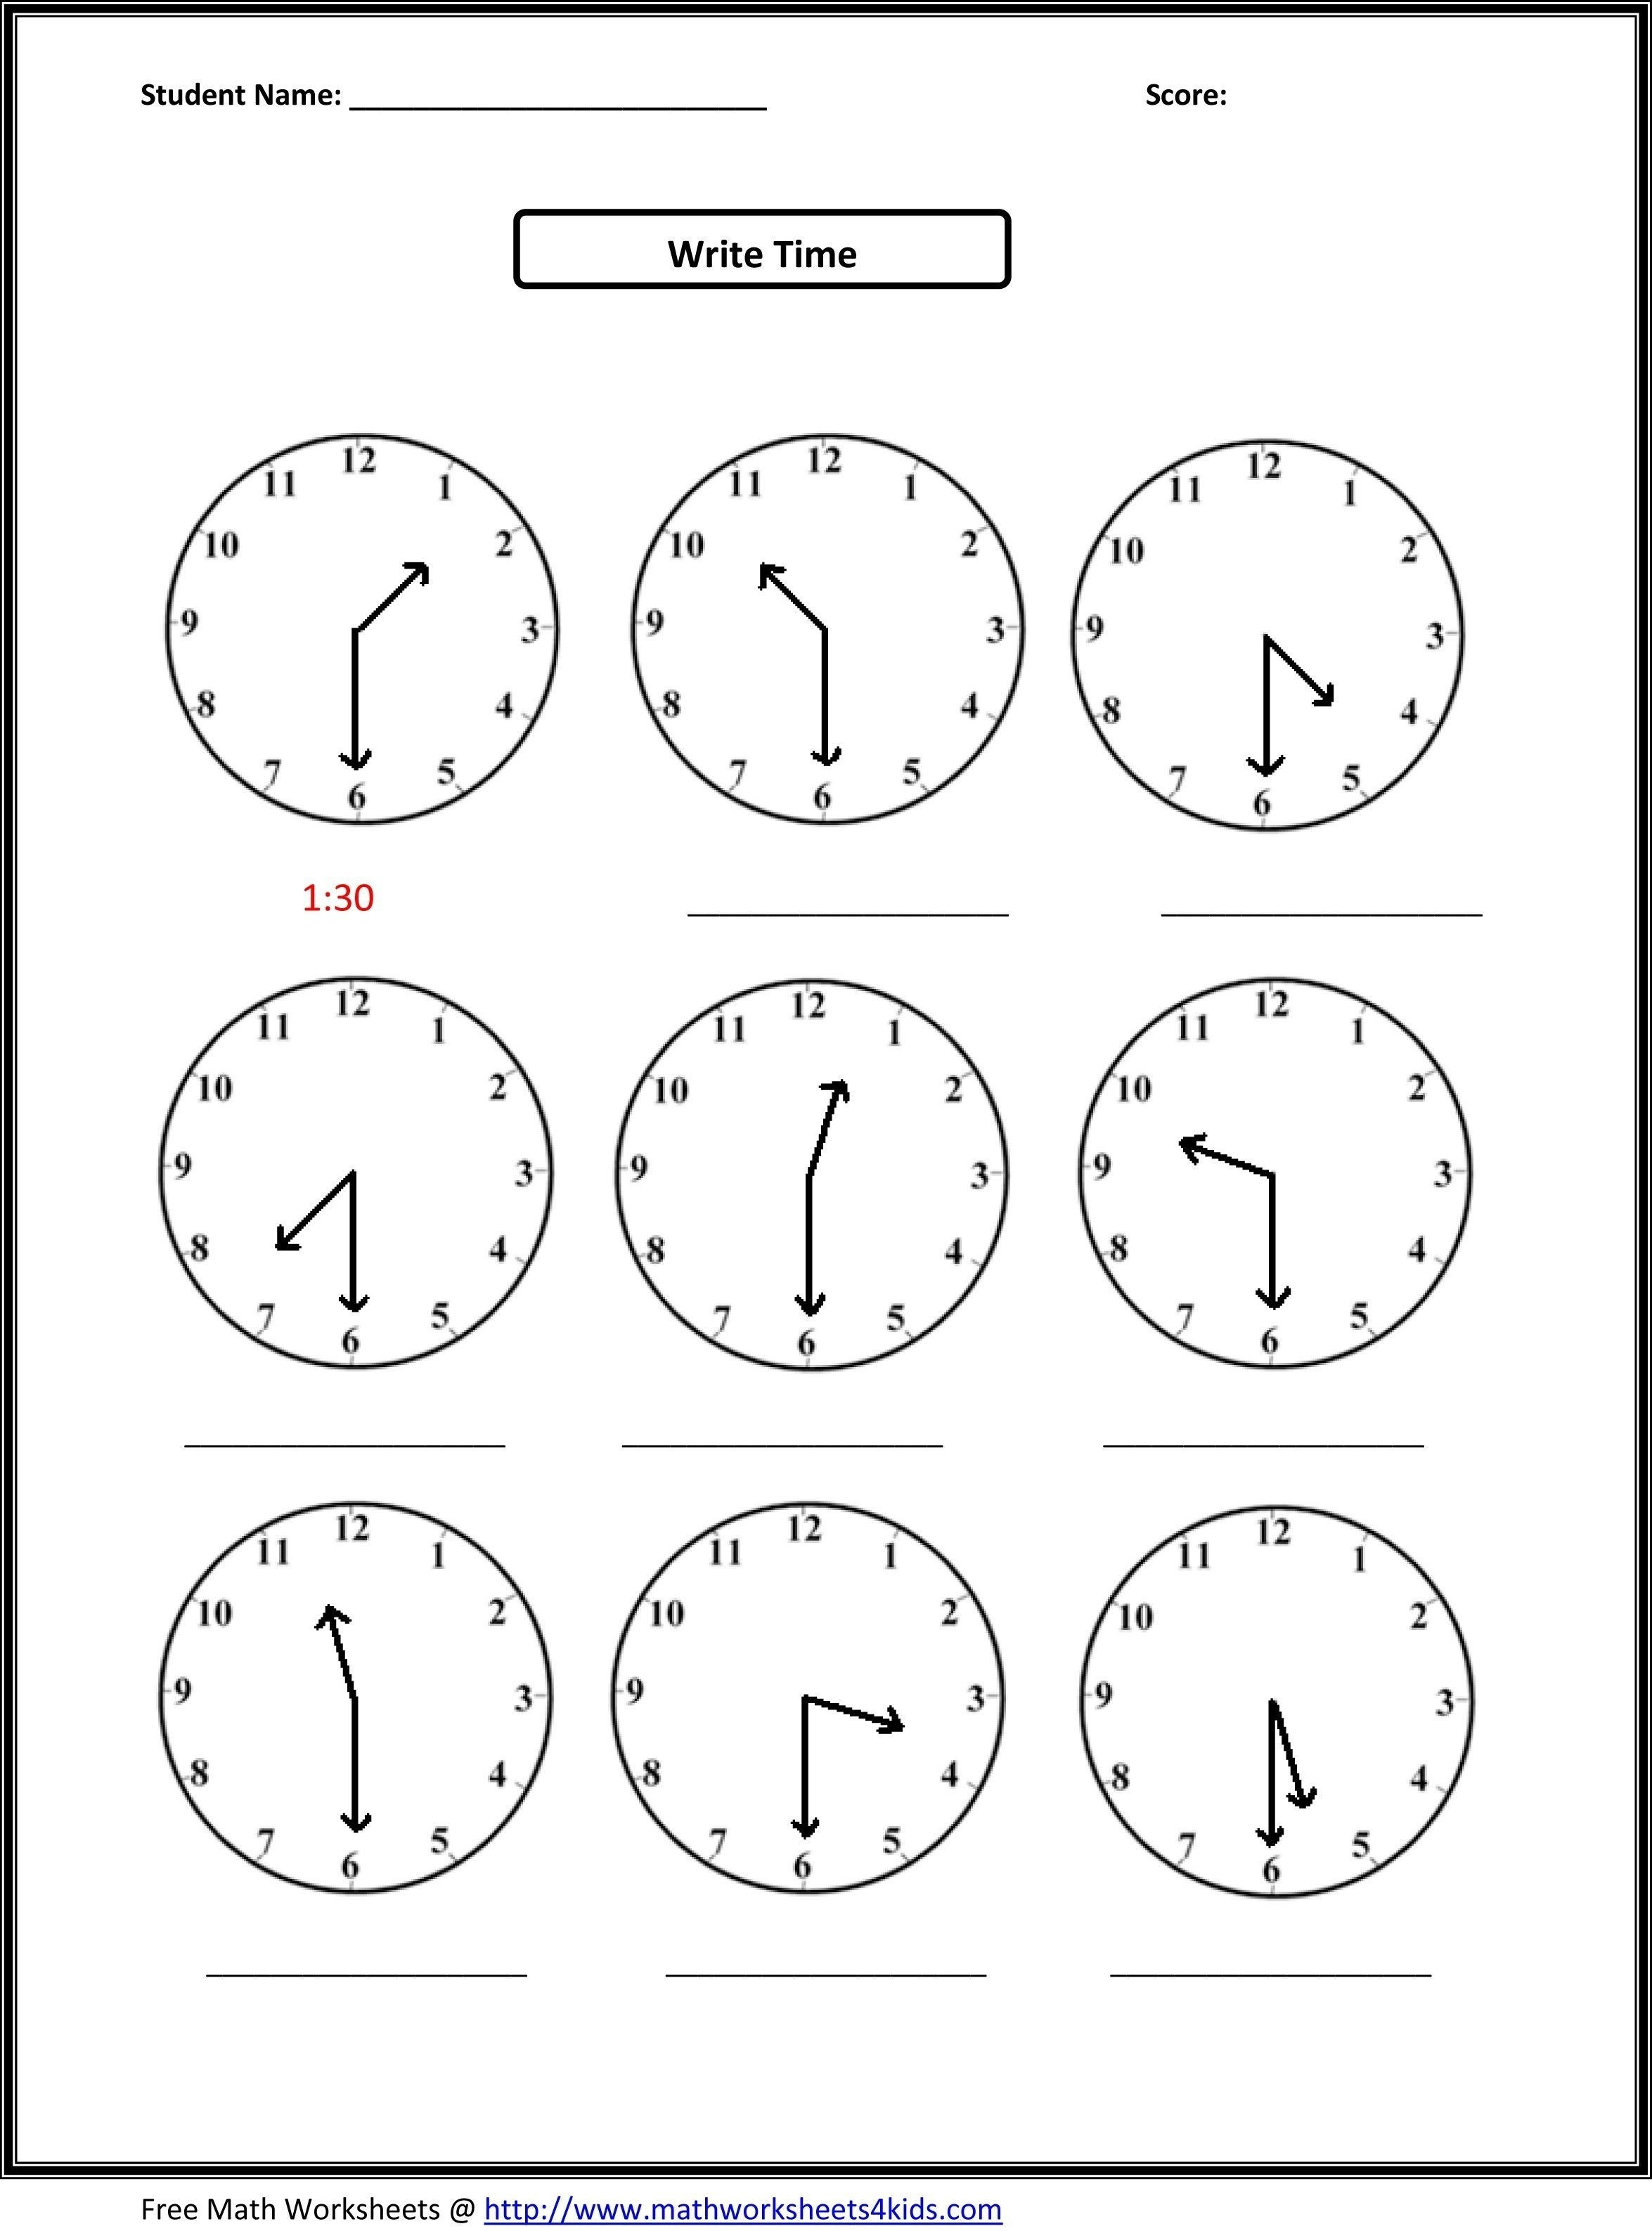 √ Telling Time Printable Worksheets First Grade Inspirationa - Free | Printable Telling Time Worksheets 1St Grade